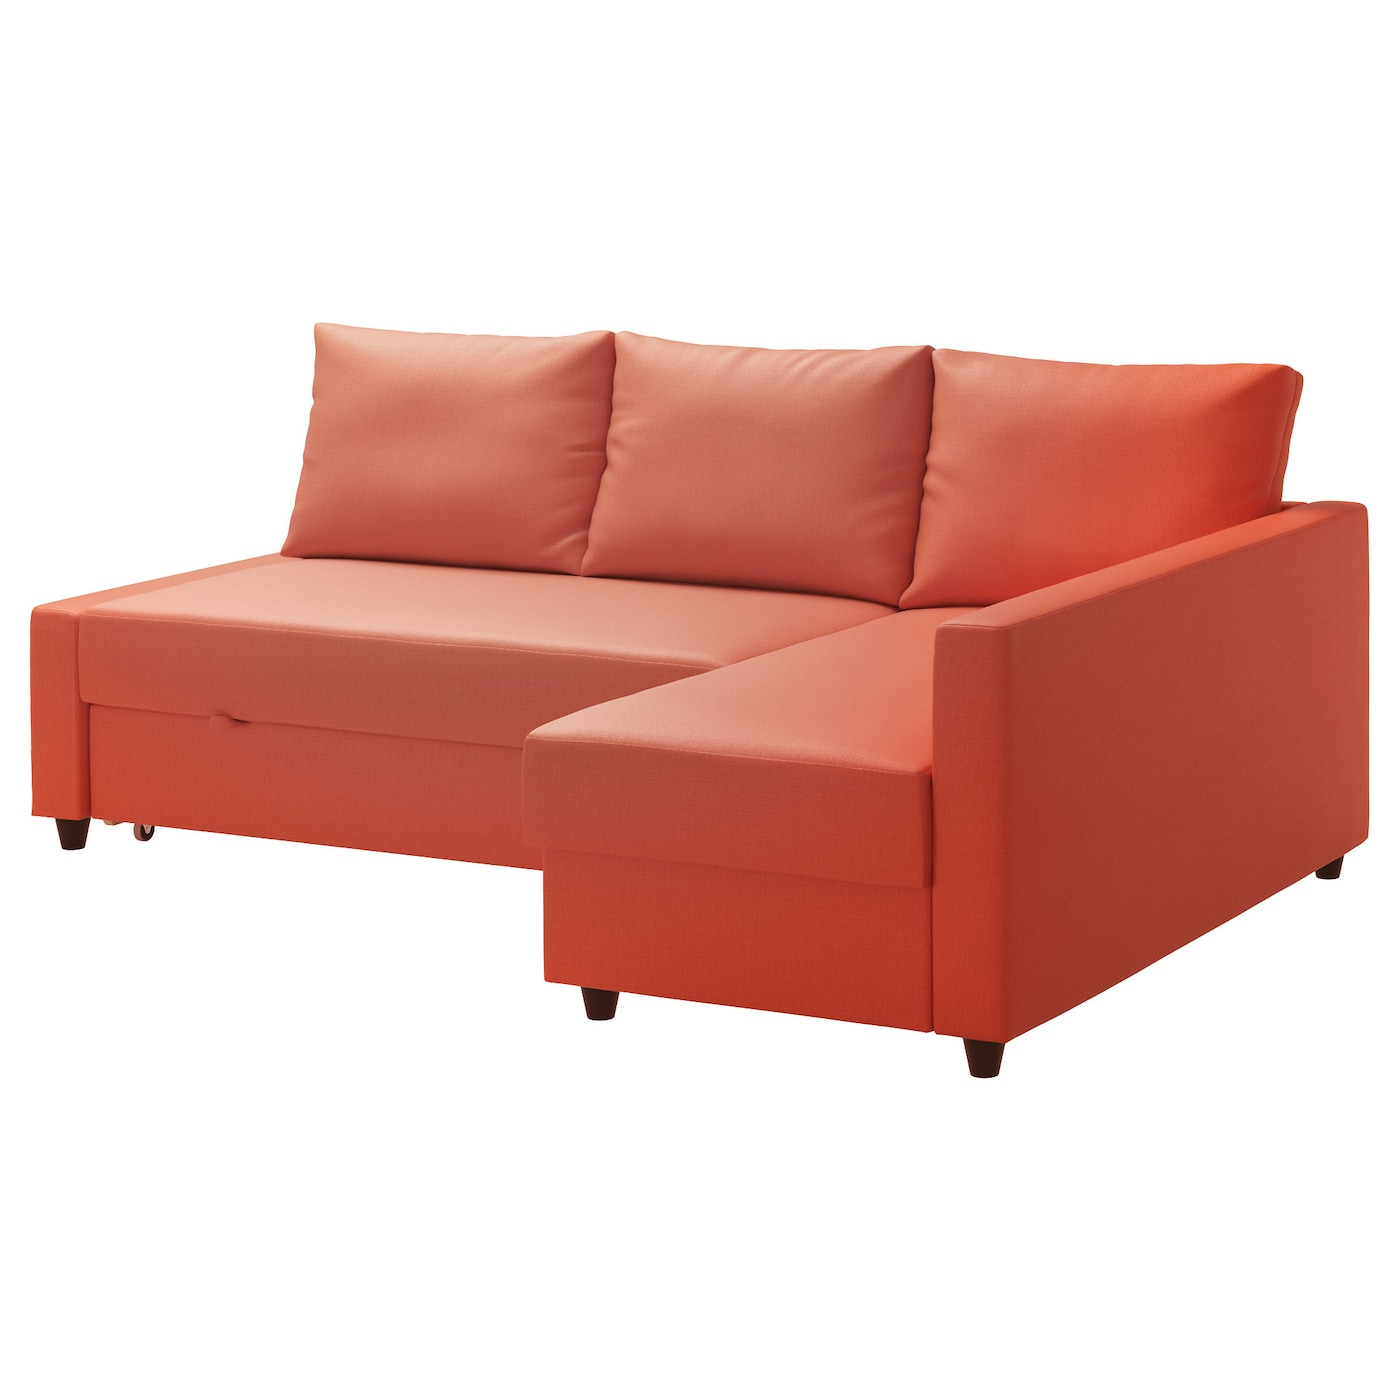 Friheten corner sofa bed with storage skiftebo dark orange for Sofa organizer